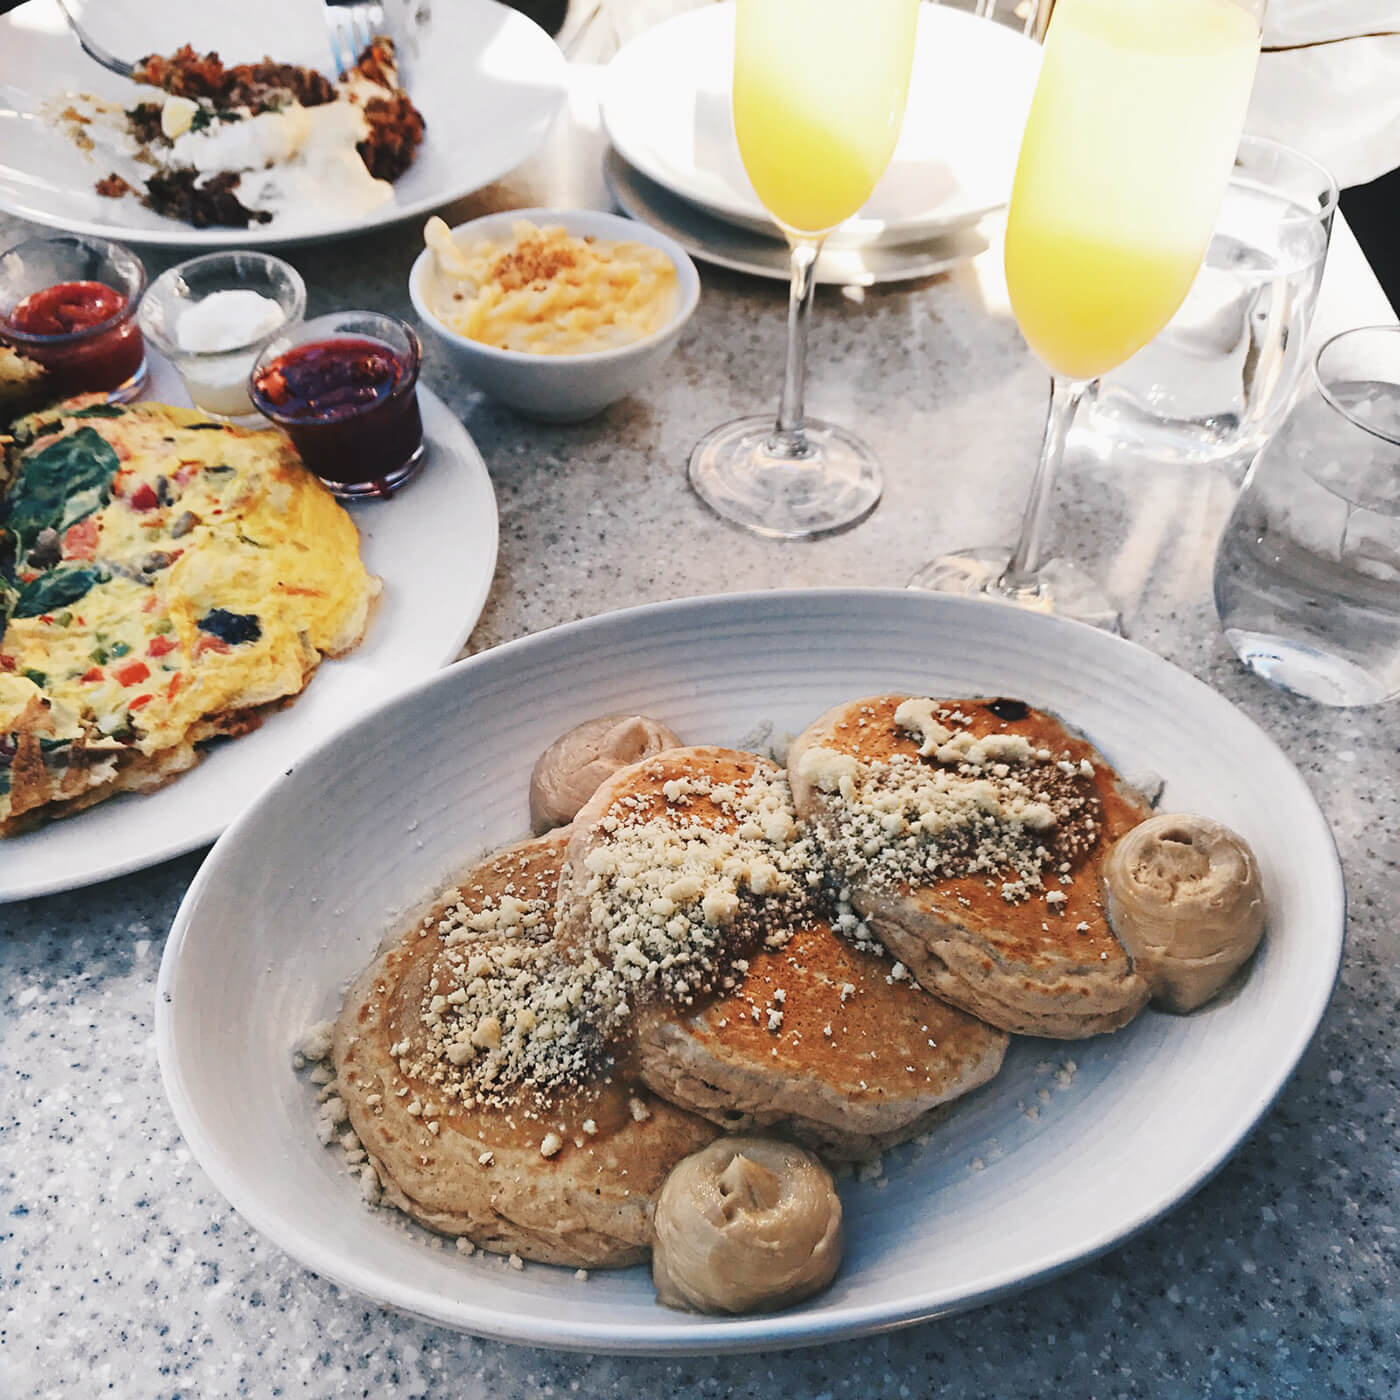 Where to Eat in Las Vegas - Carly Cristman